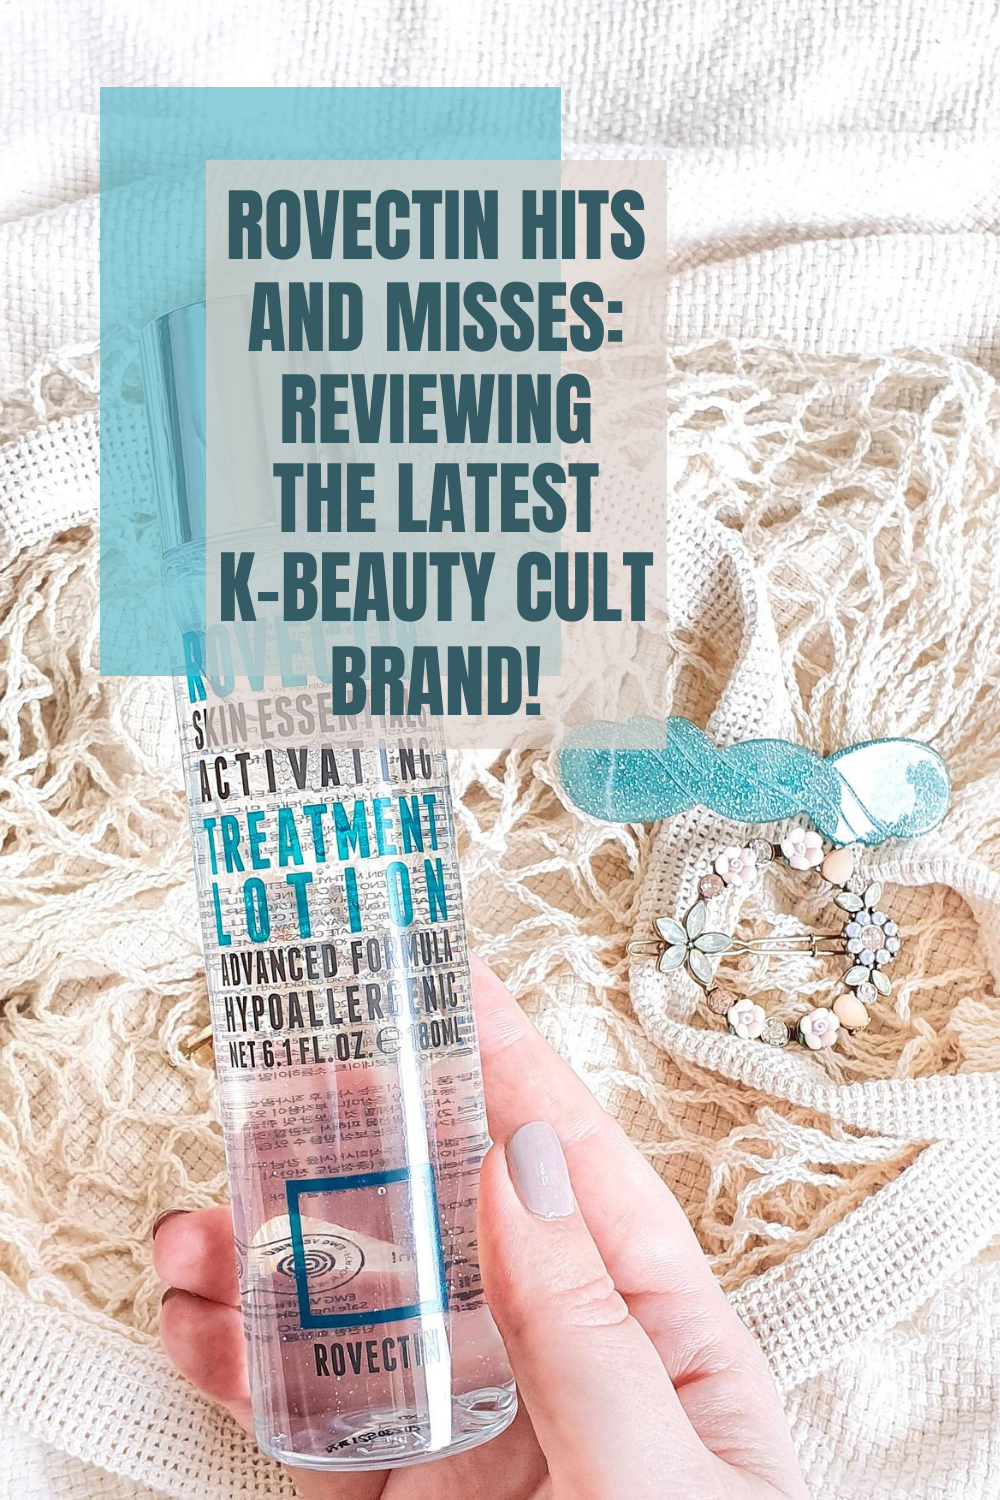 ROVECTIN Hits and Misses: Reviewing the Latest K-Beauty CULT Brand!